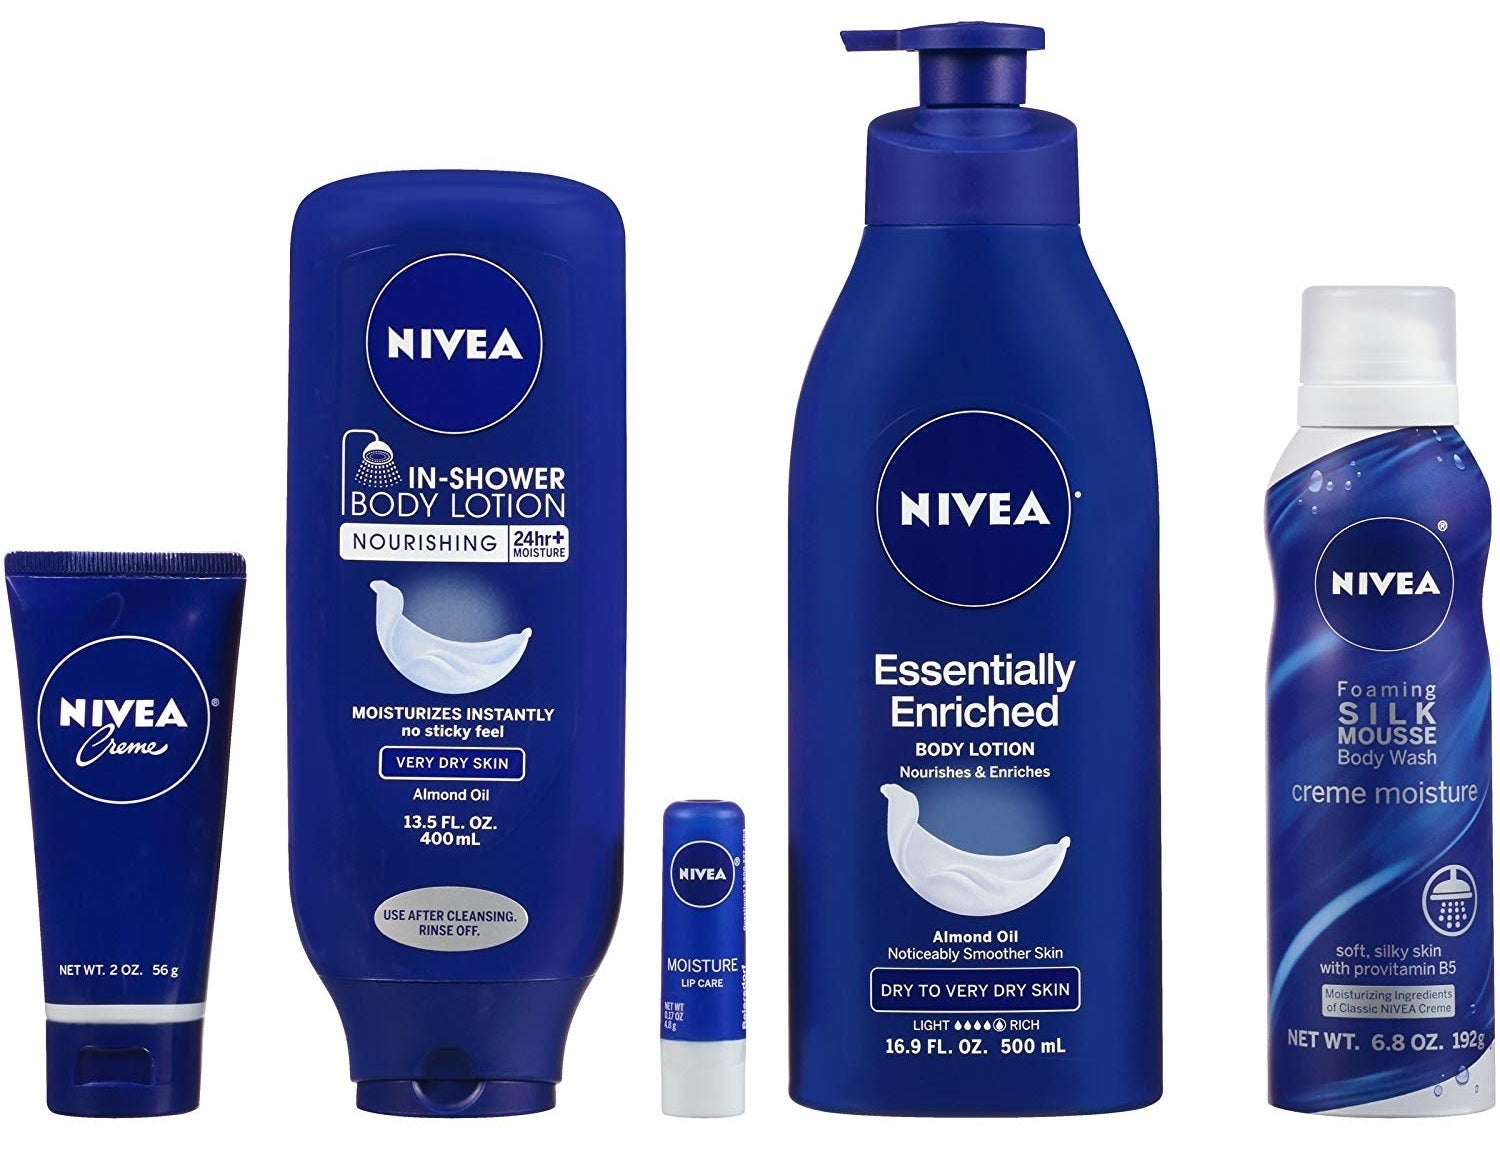 the Nivea products